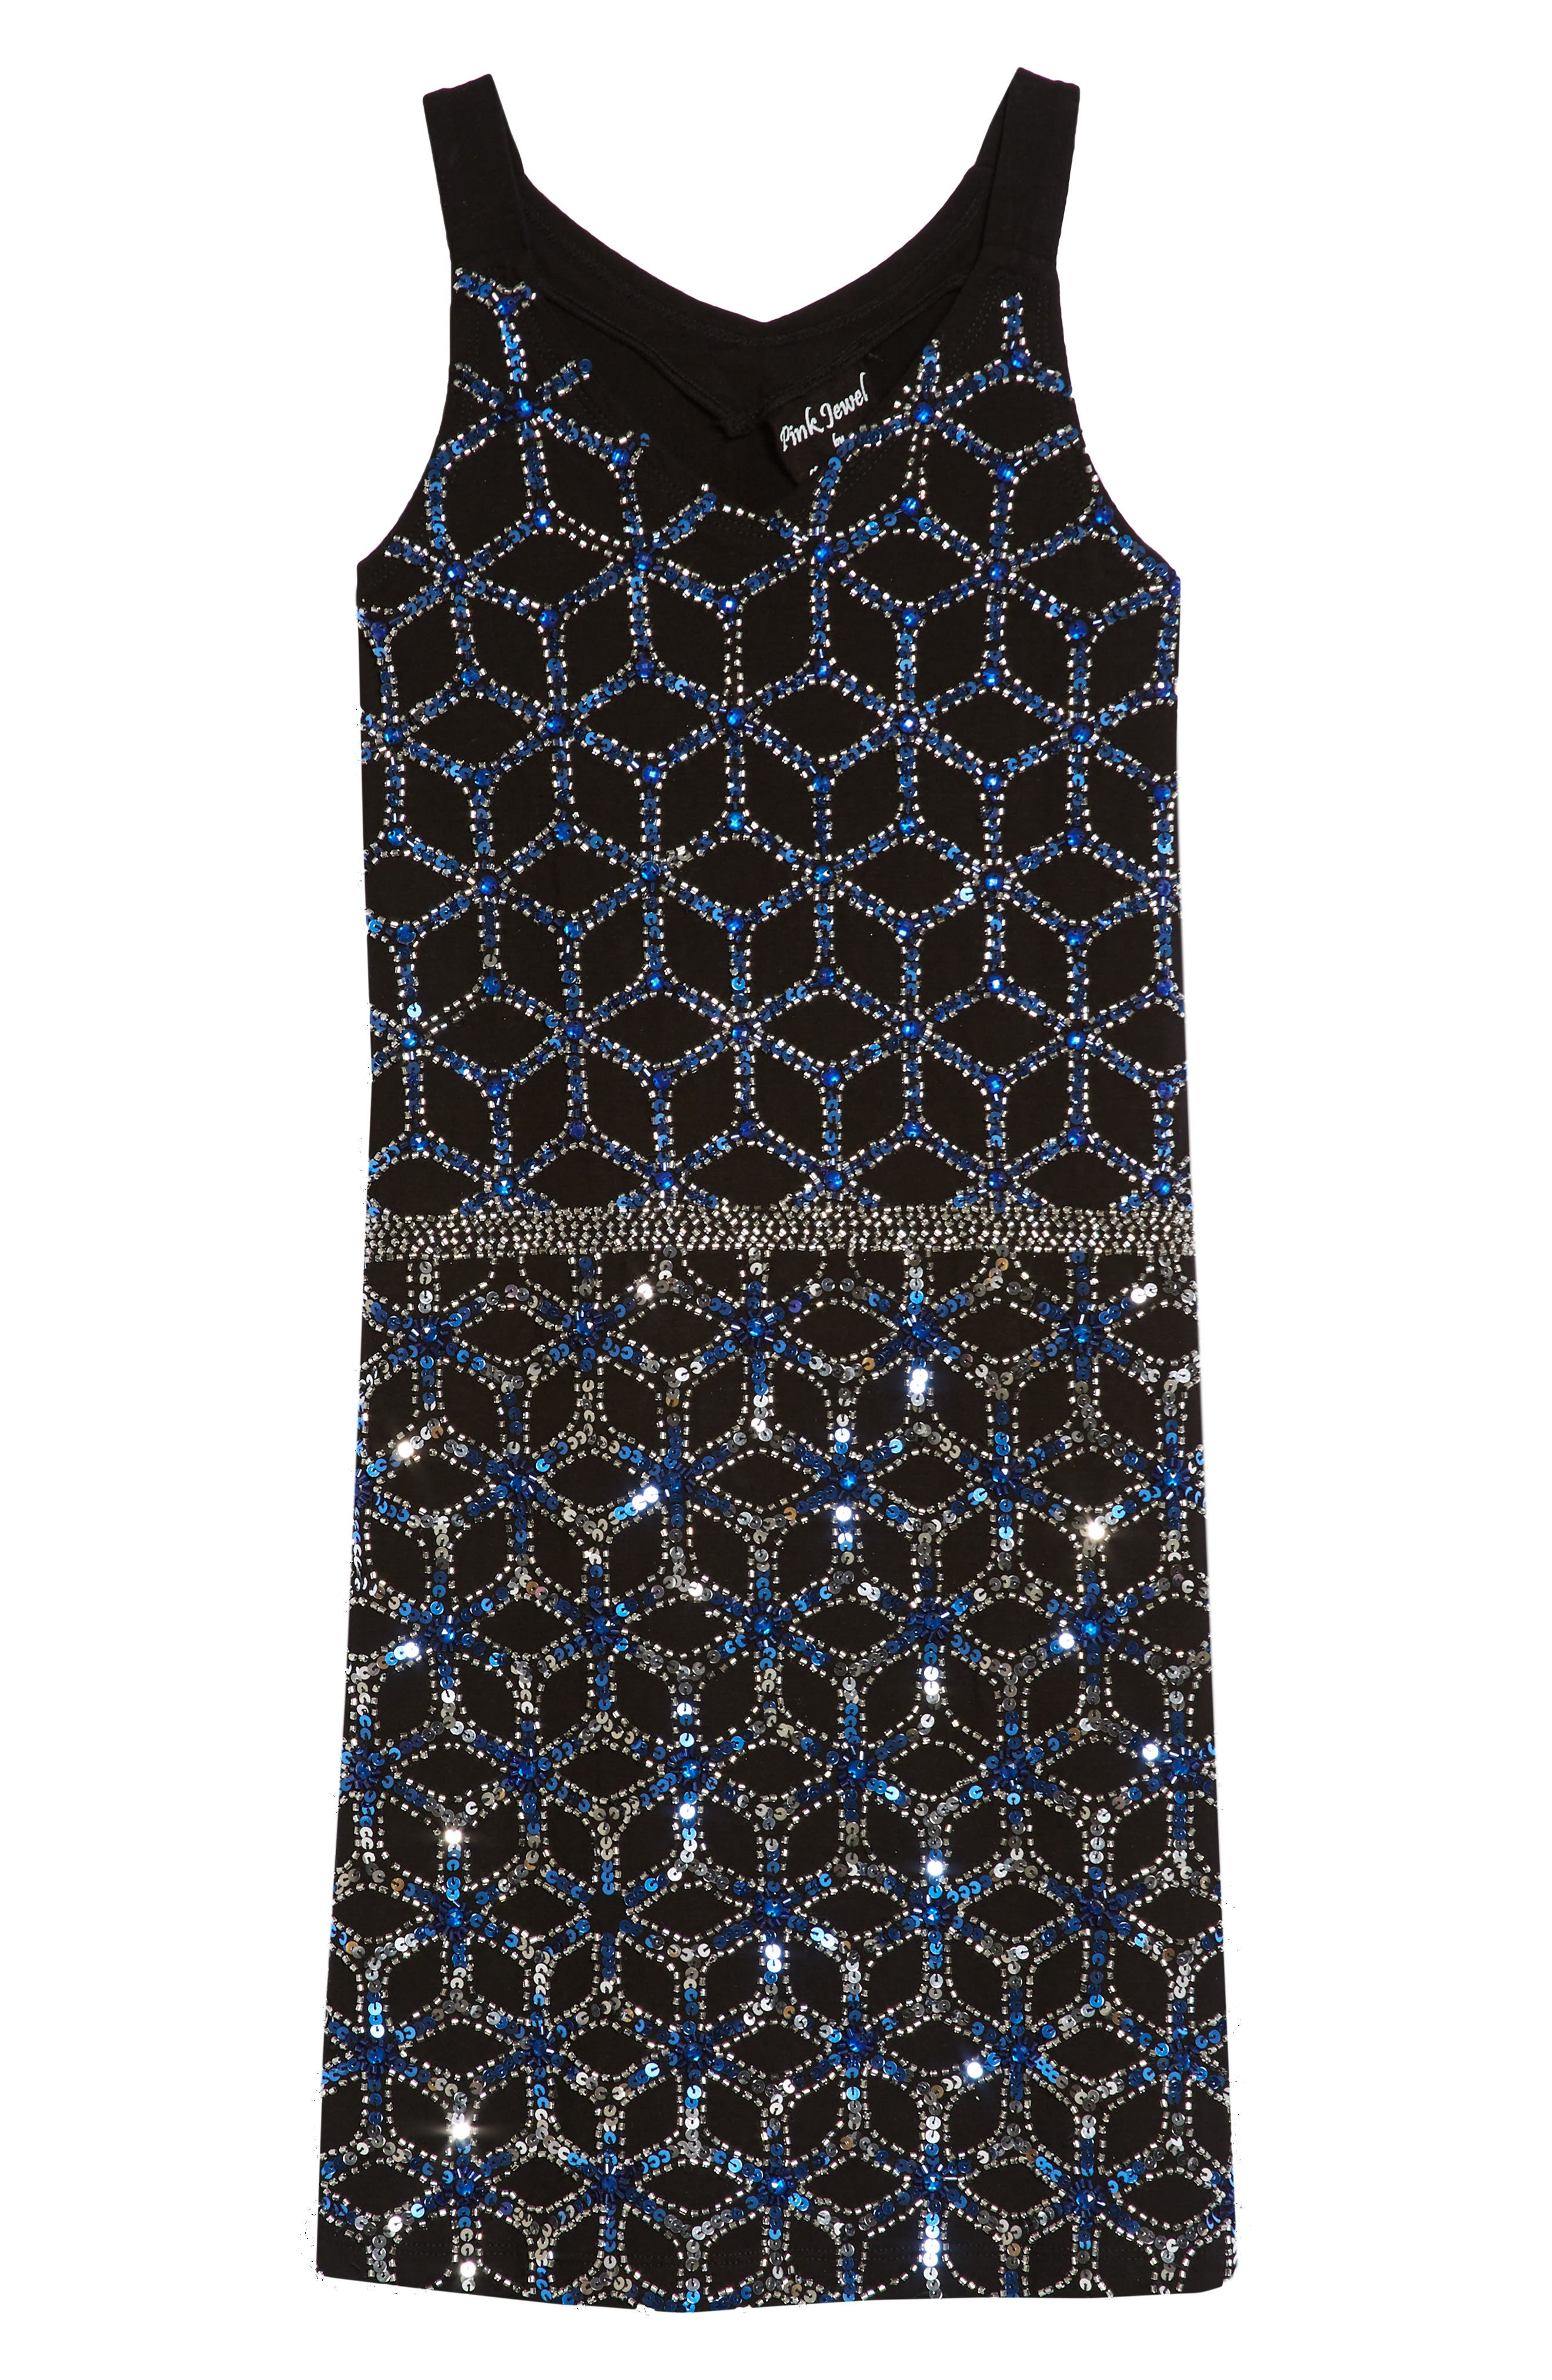 Sequined & Beaded Tank Dress,                         Main,                         color, 001